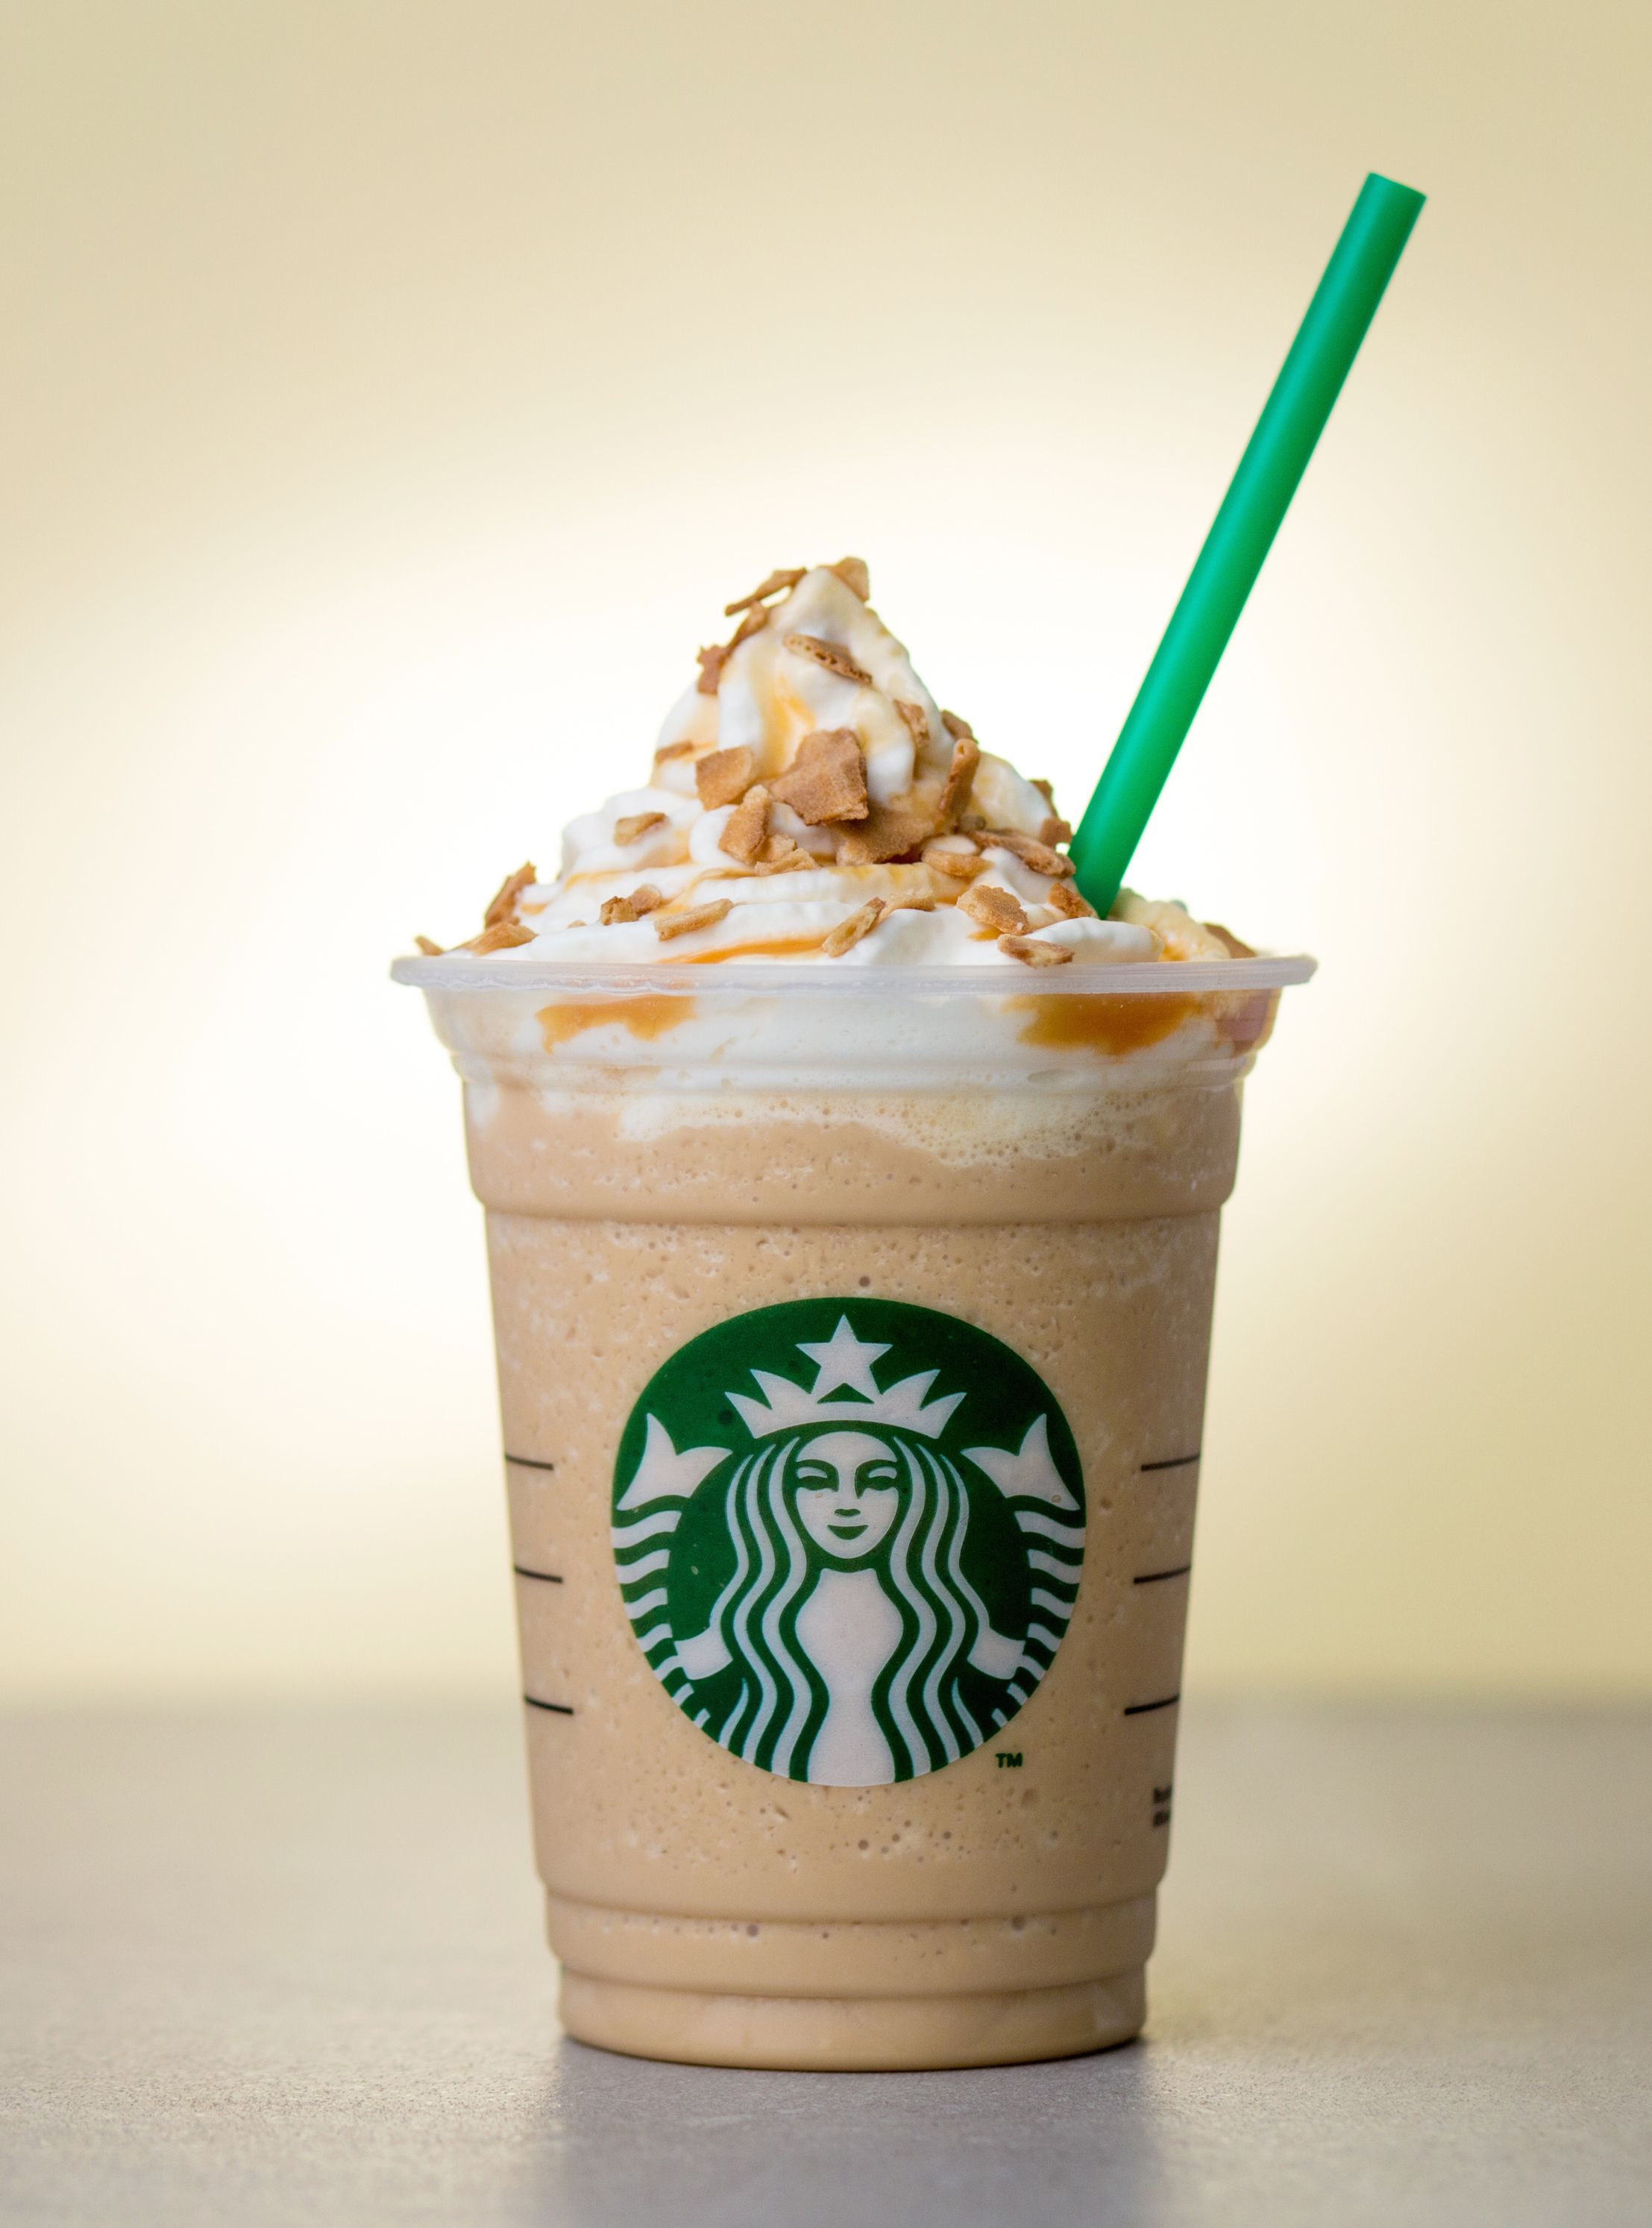 Starbucks Just Released A Frappuccino With A Pie Crust Lid